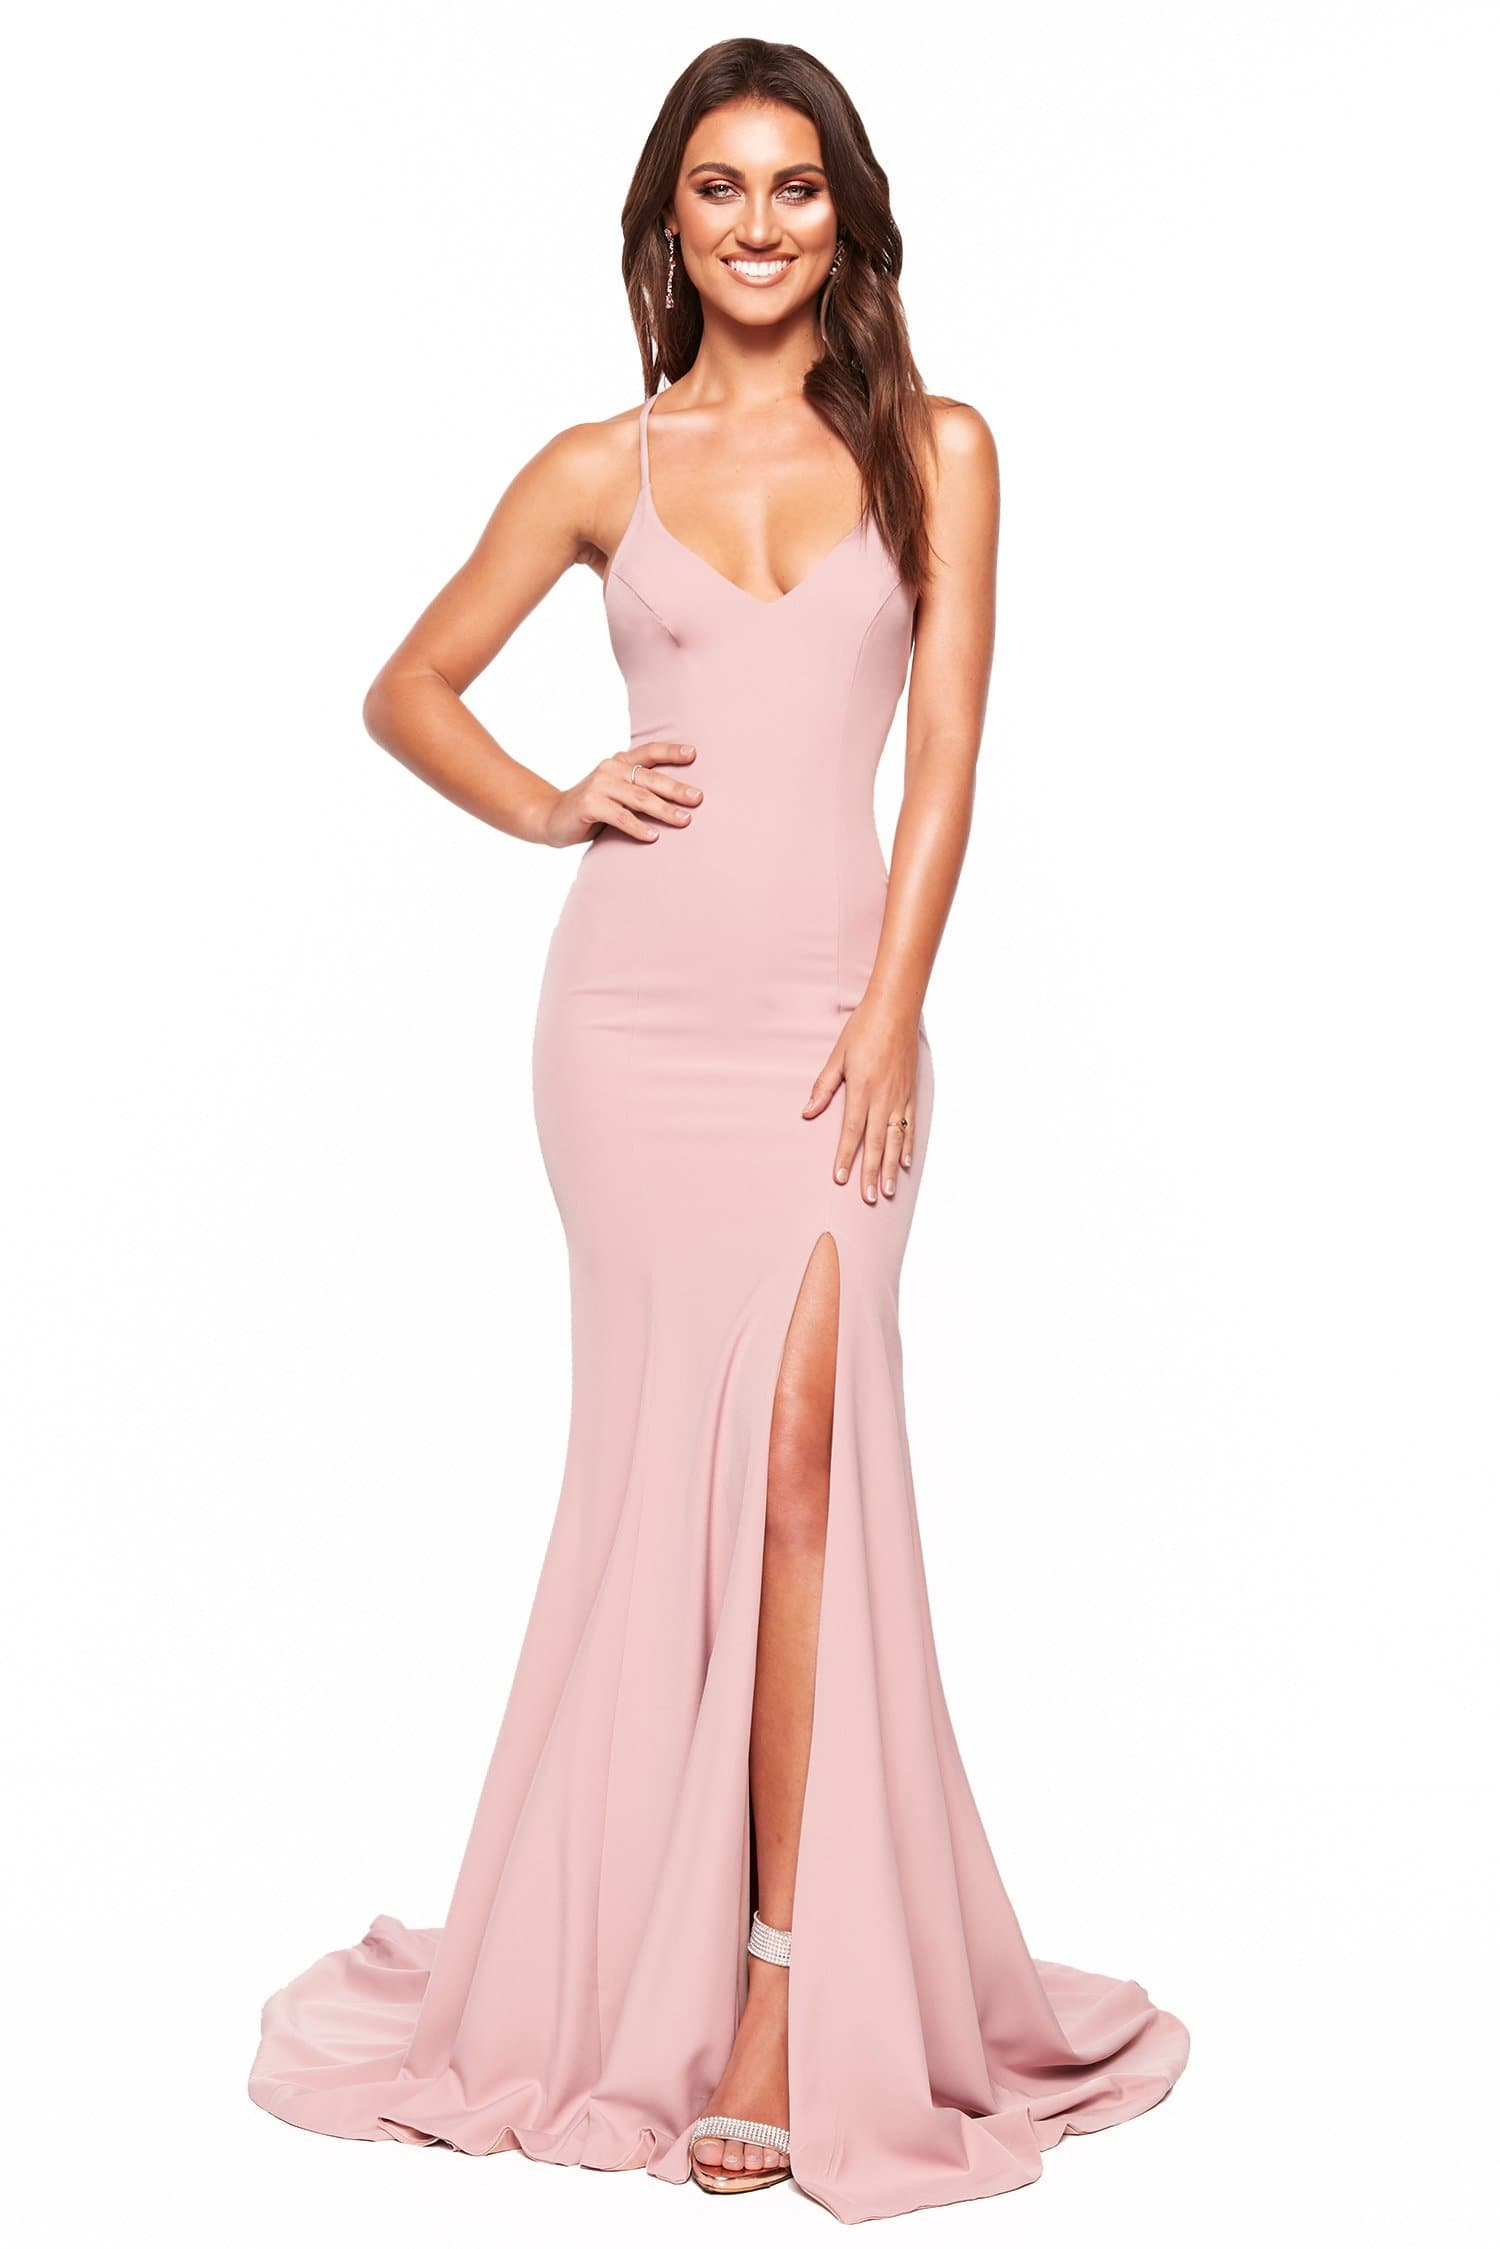 A&N Luxe Emilie - Dusty Pink Gown with V-Neck, Lace-Up Back & Slit